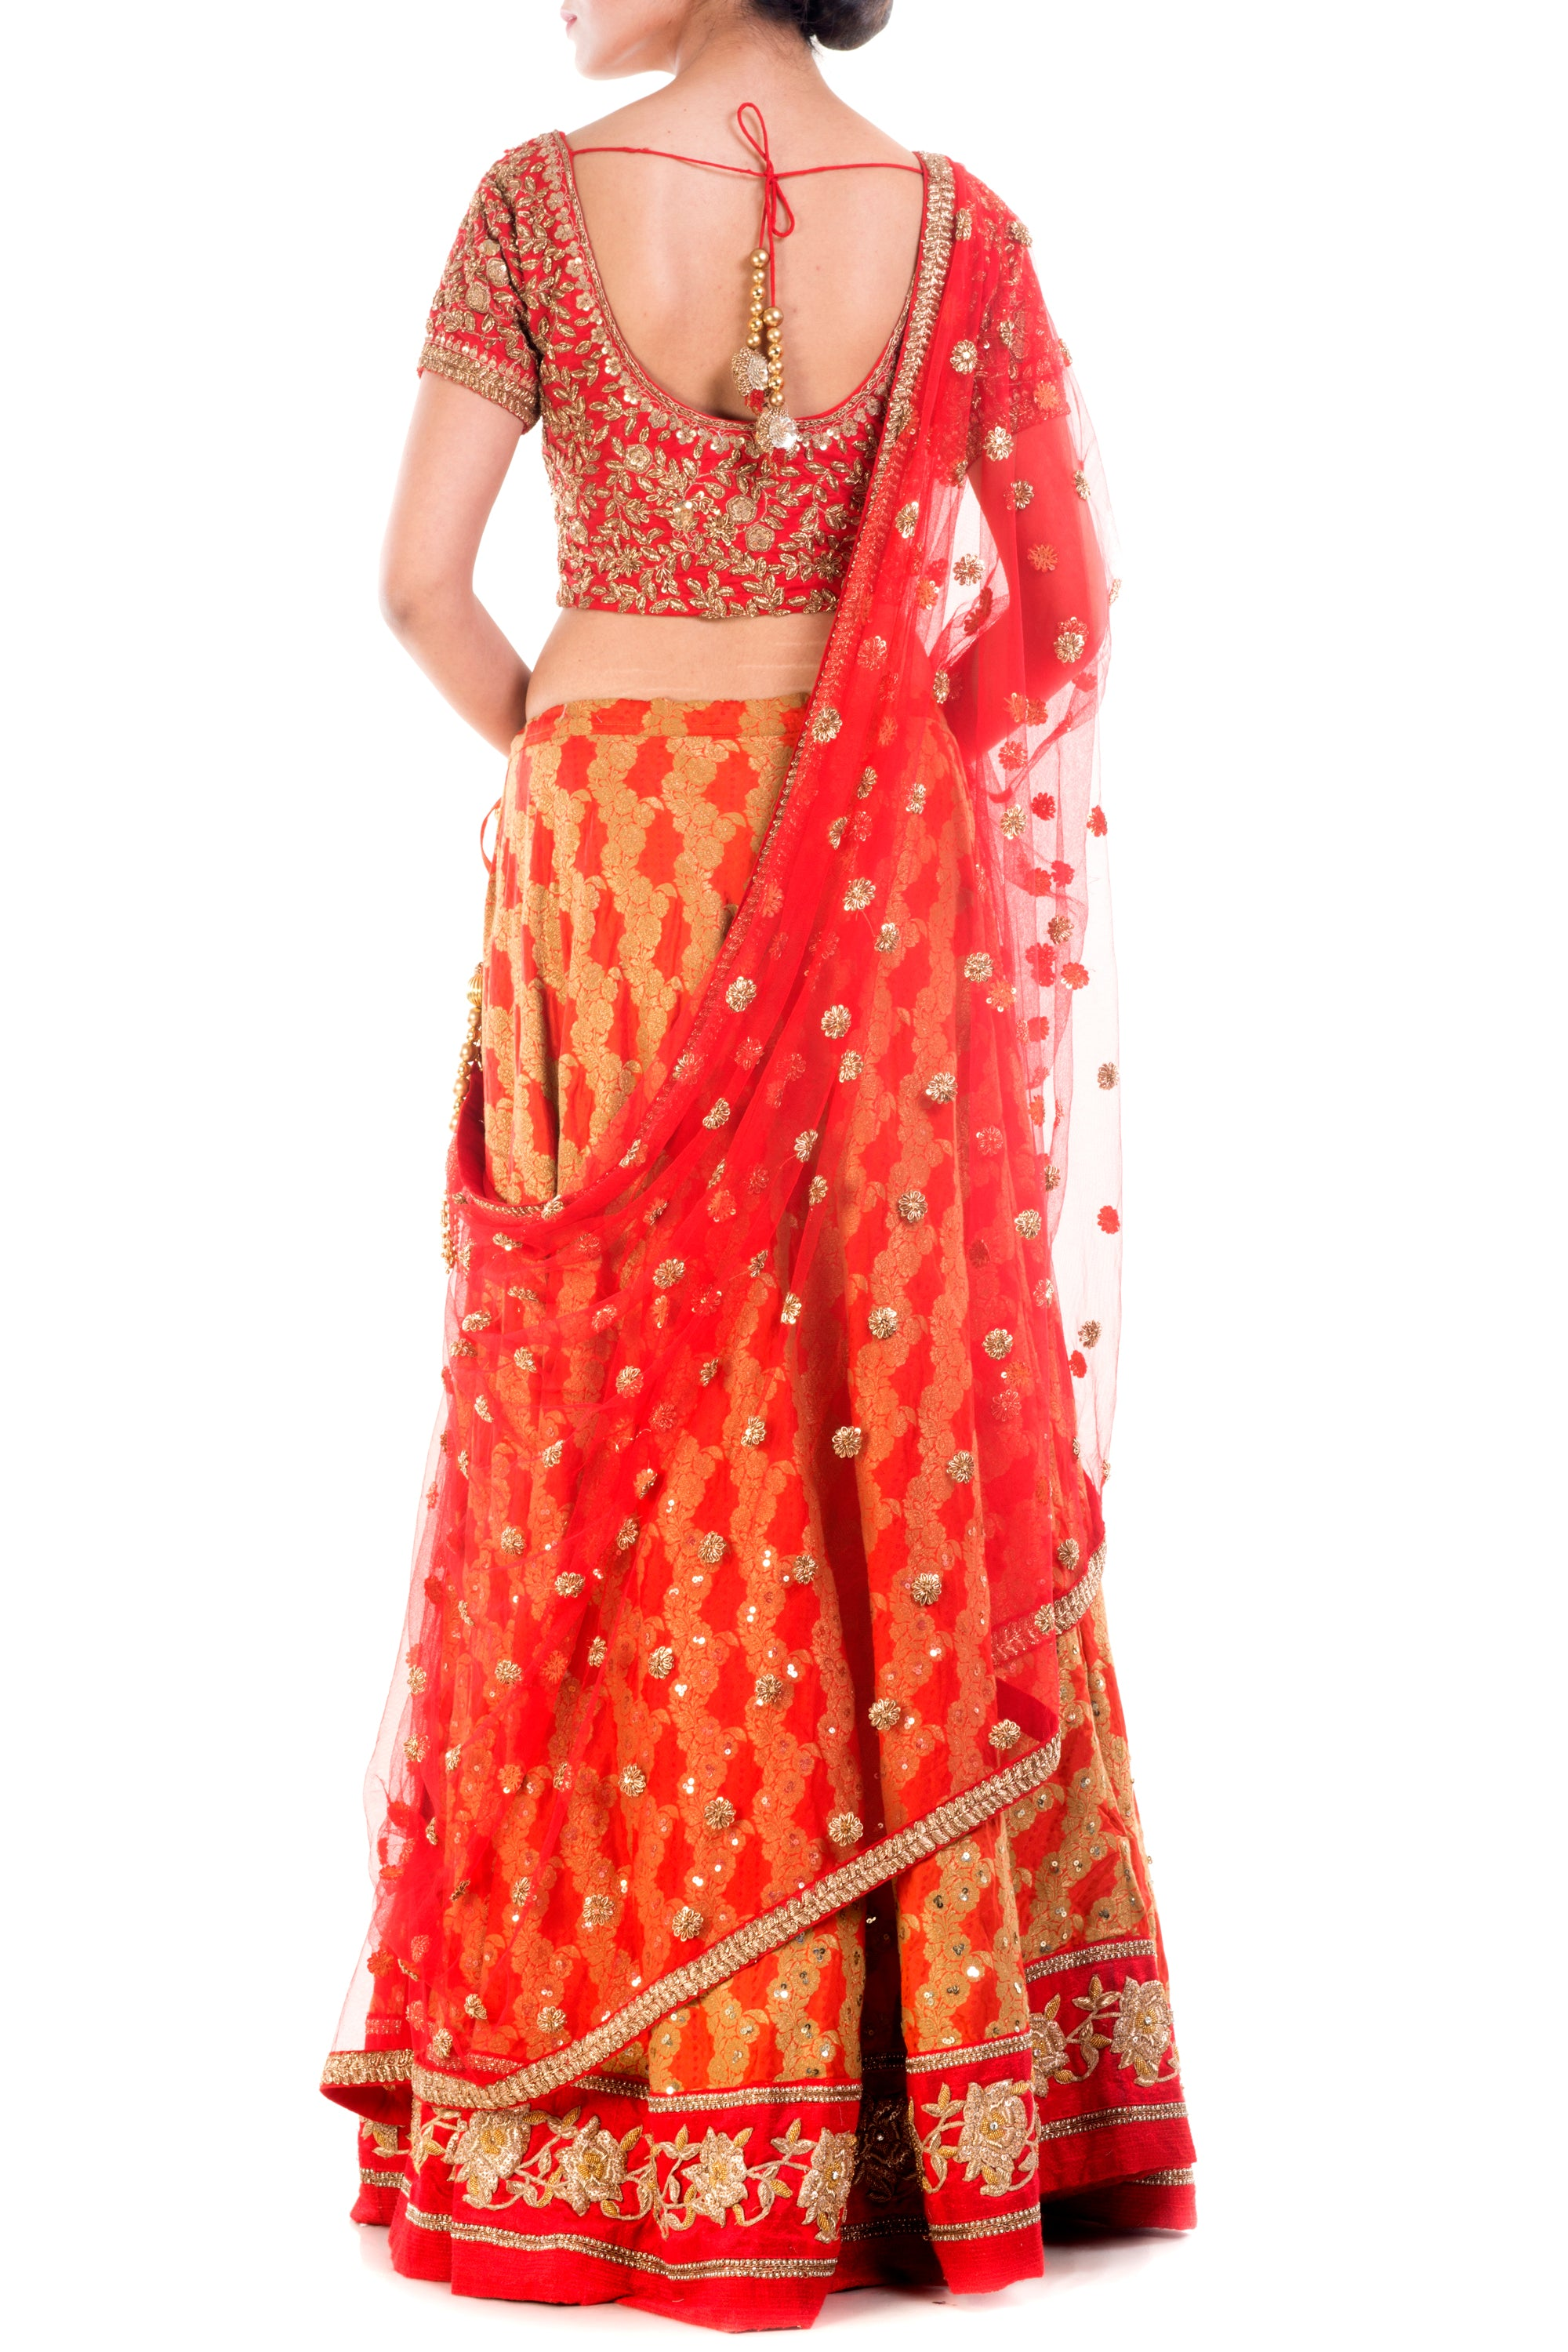 Crimson Red Gold Embellished Bridal Lehenga Back